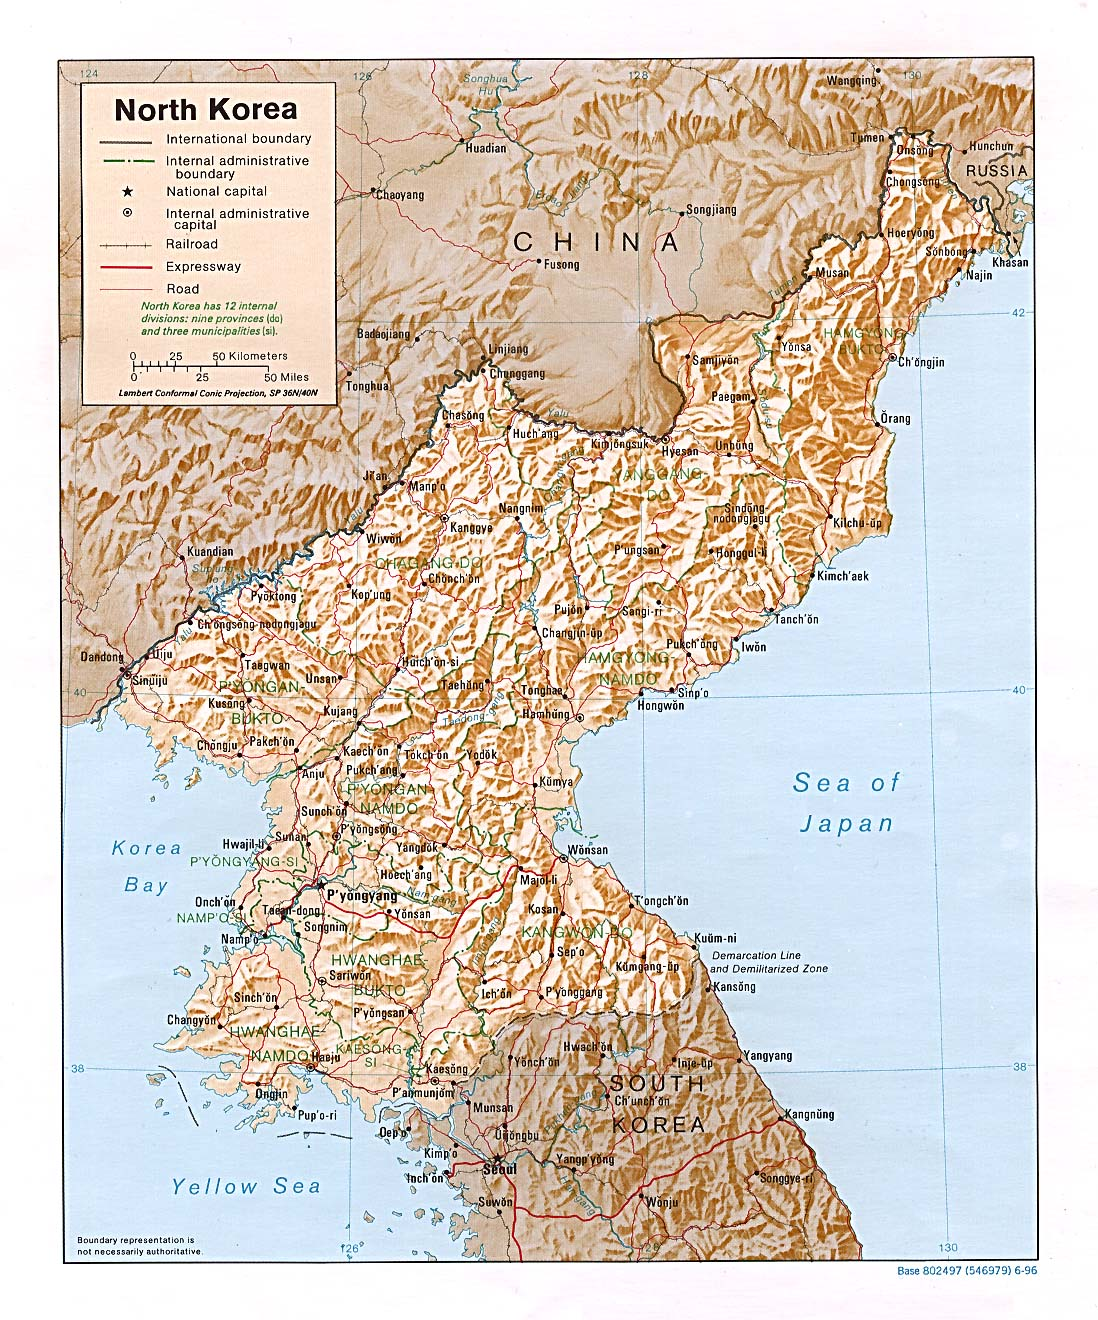 North Korea map & information - Find our Community